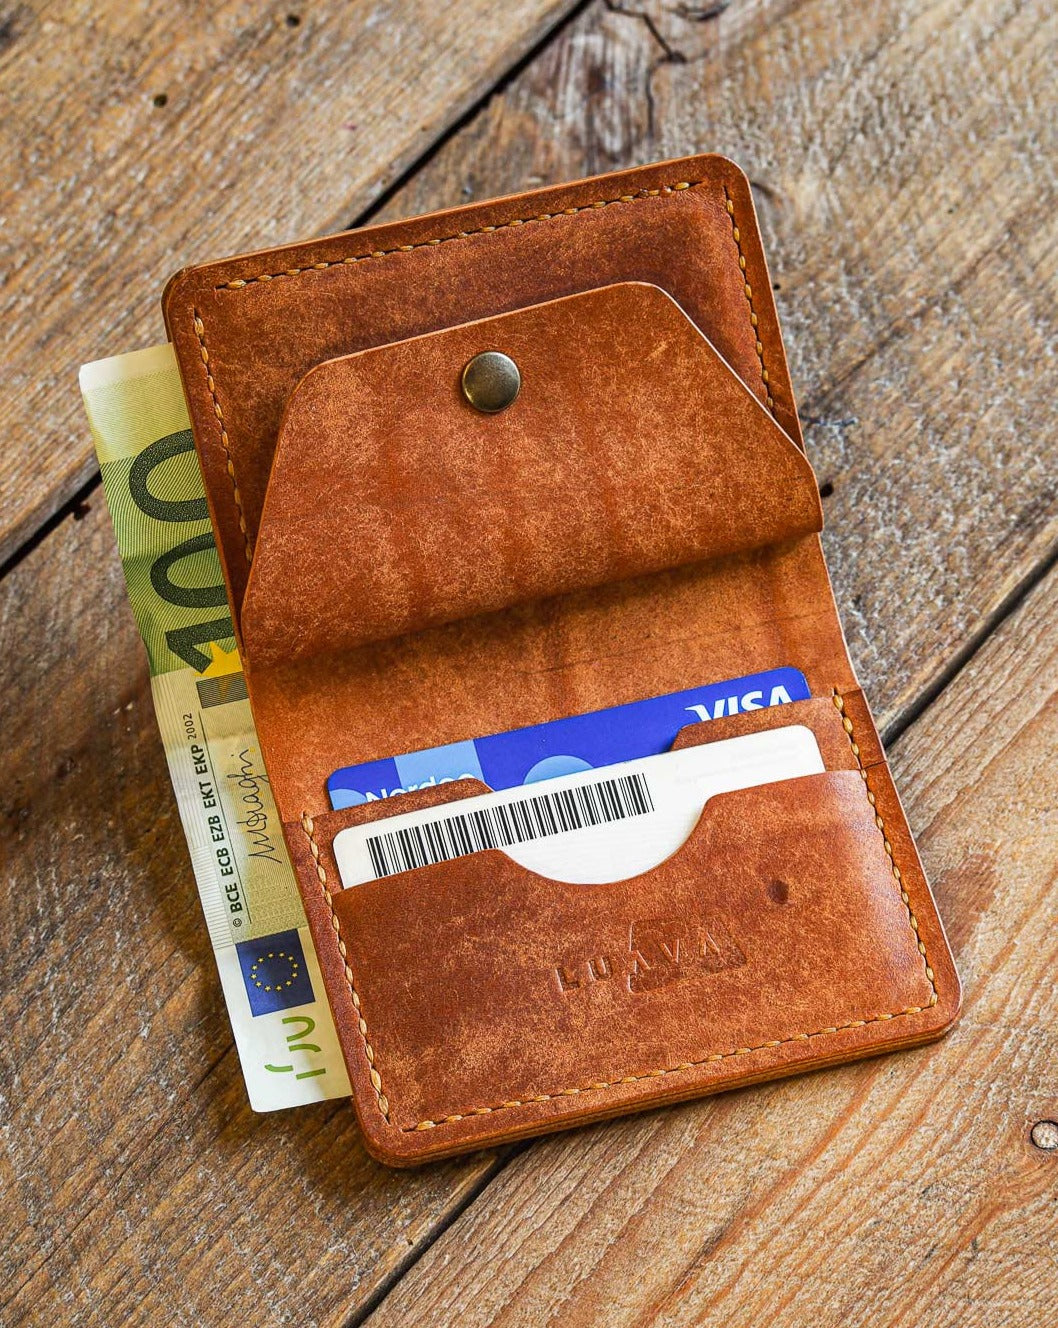 Luava handmade leather wallet KOLOSS pine card holder cardholder handcrafted pecos raw whiskey front open in use